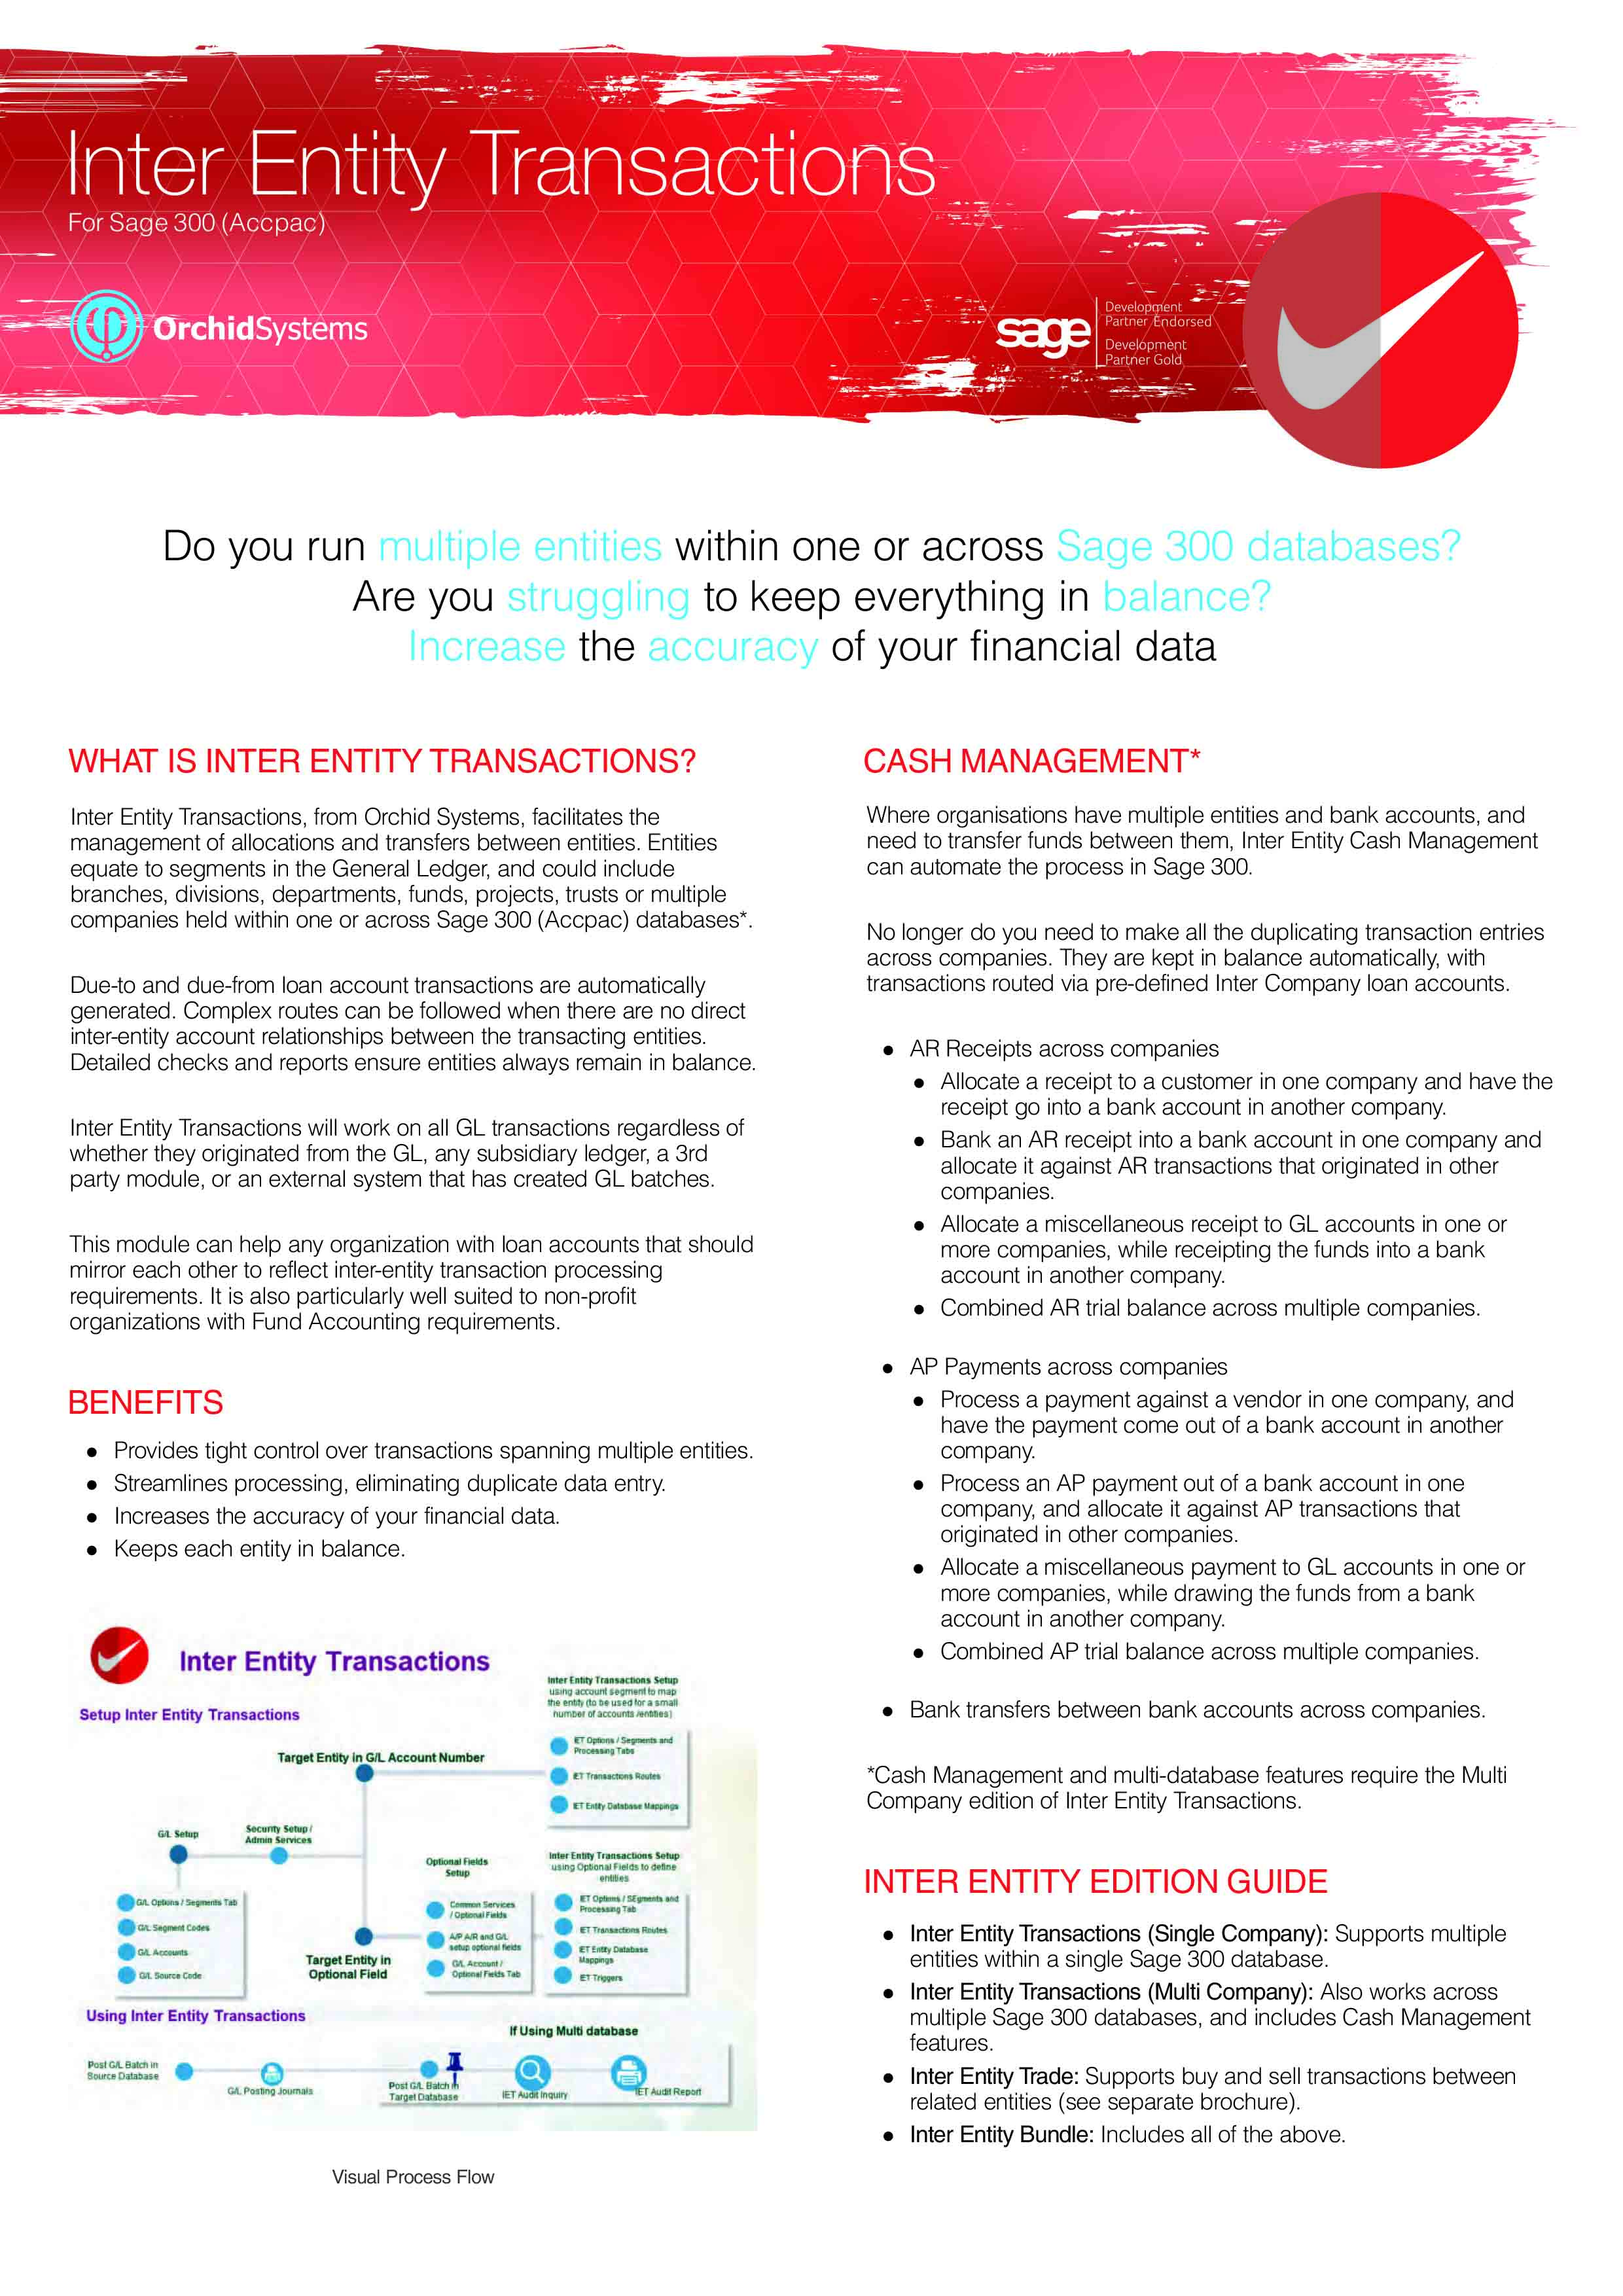 Inter Entity Transactions Brochure